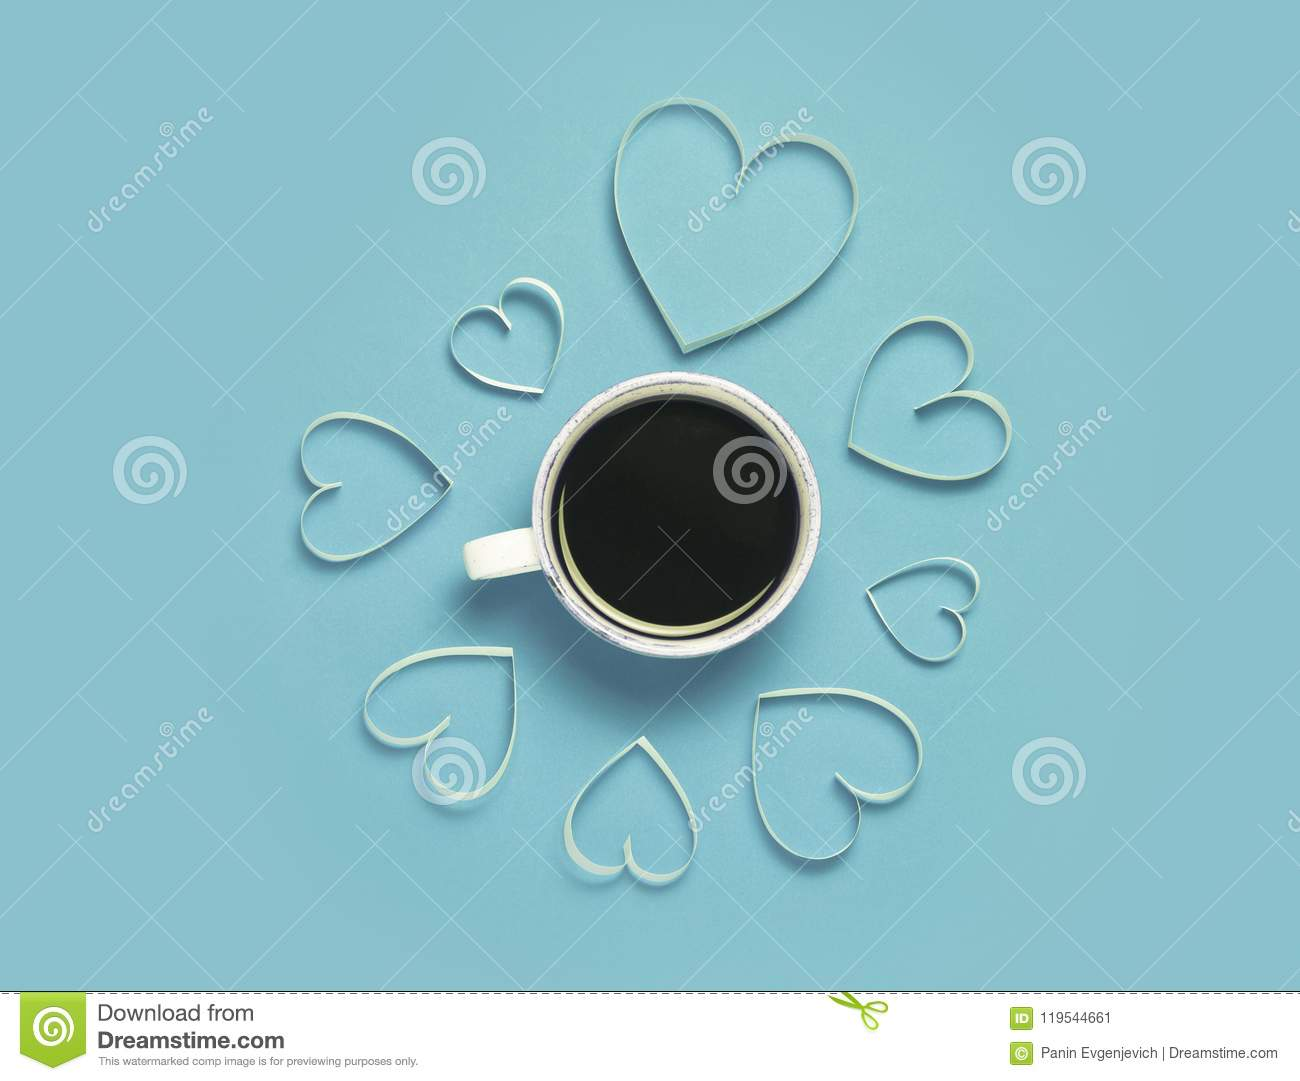 Cup of coffee and paper hearts on red background. St.Valentine`s day greeting concept. Lovely and minimalistic picture. Top view,